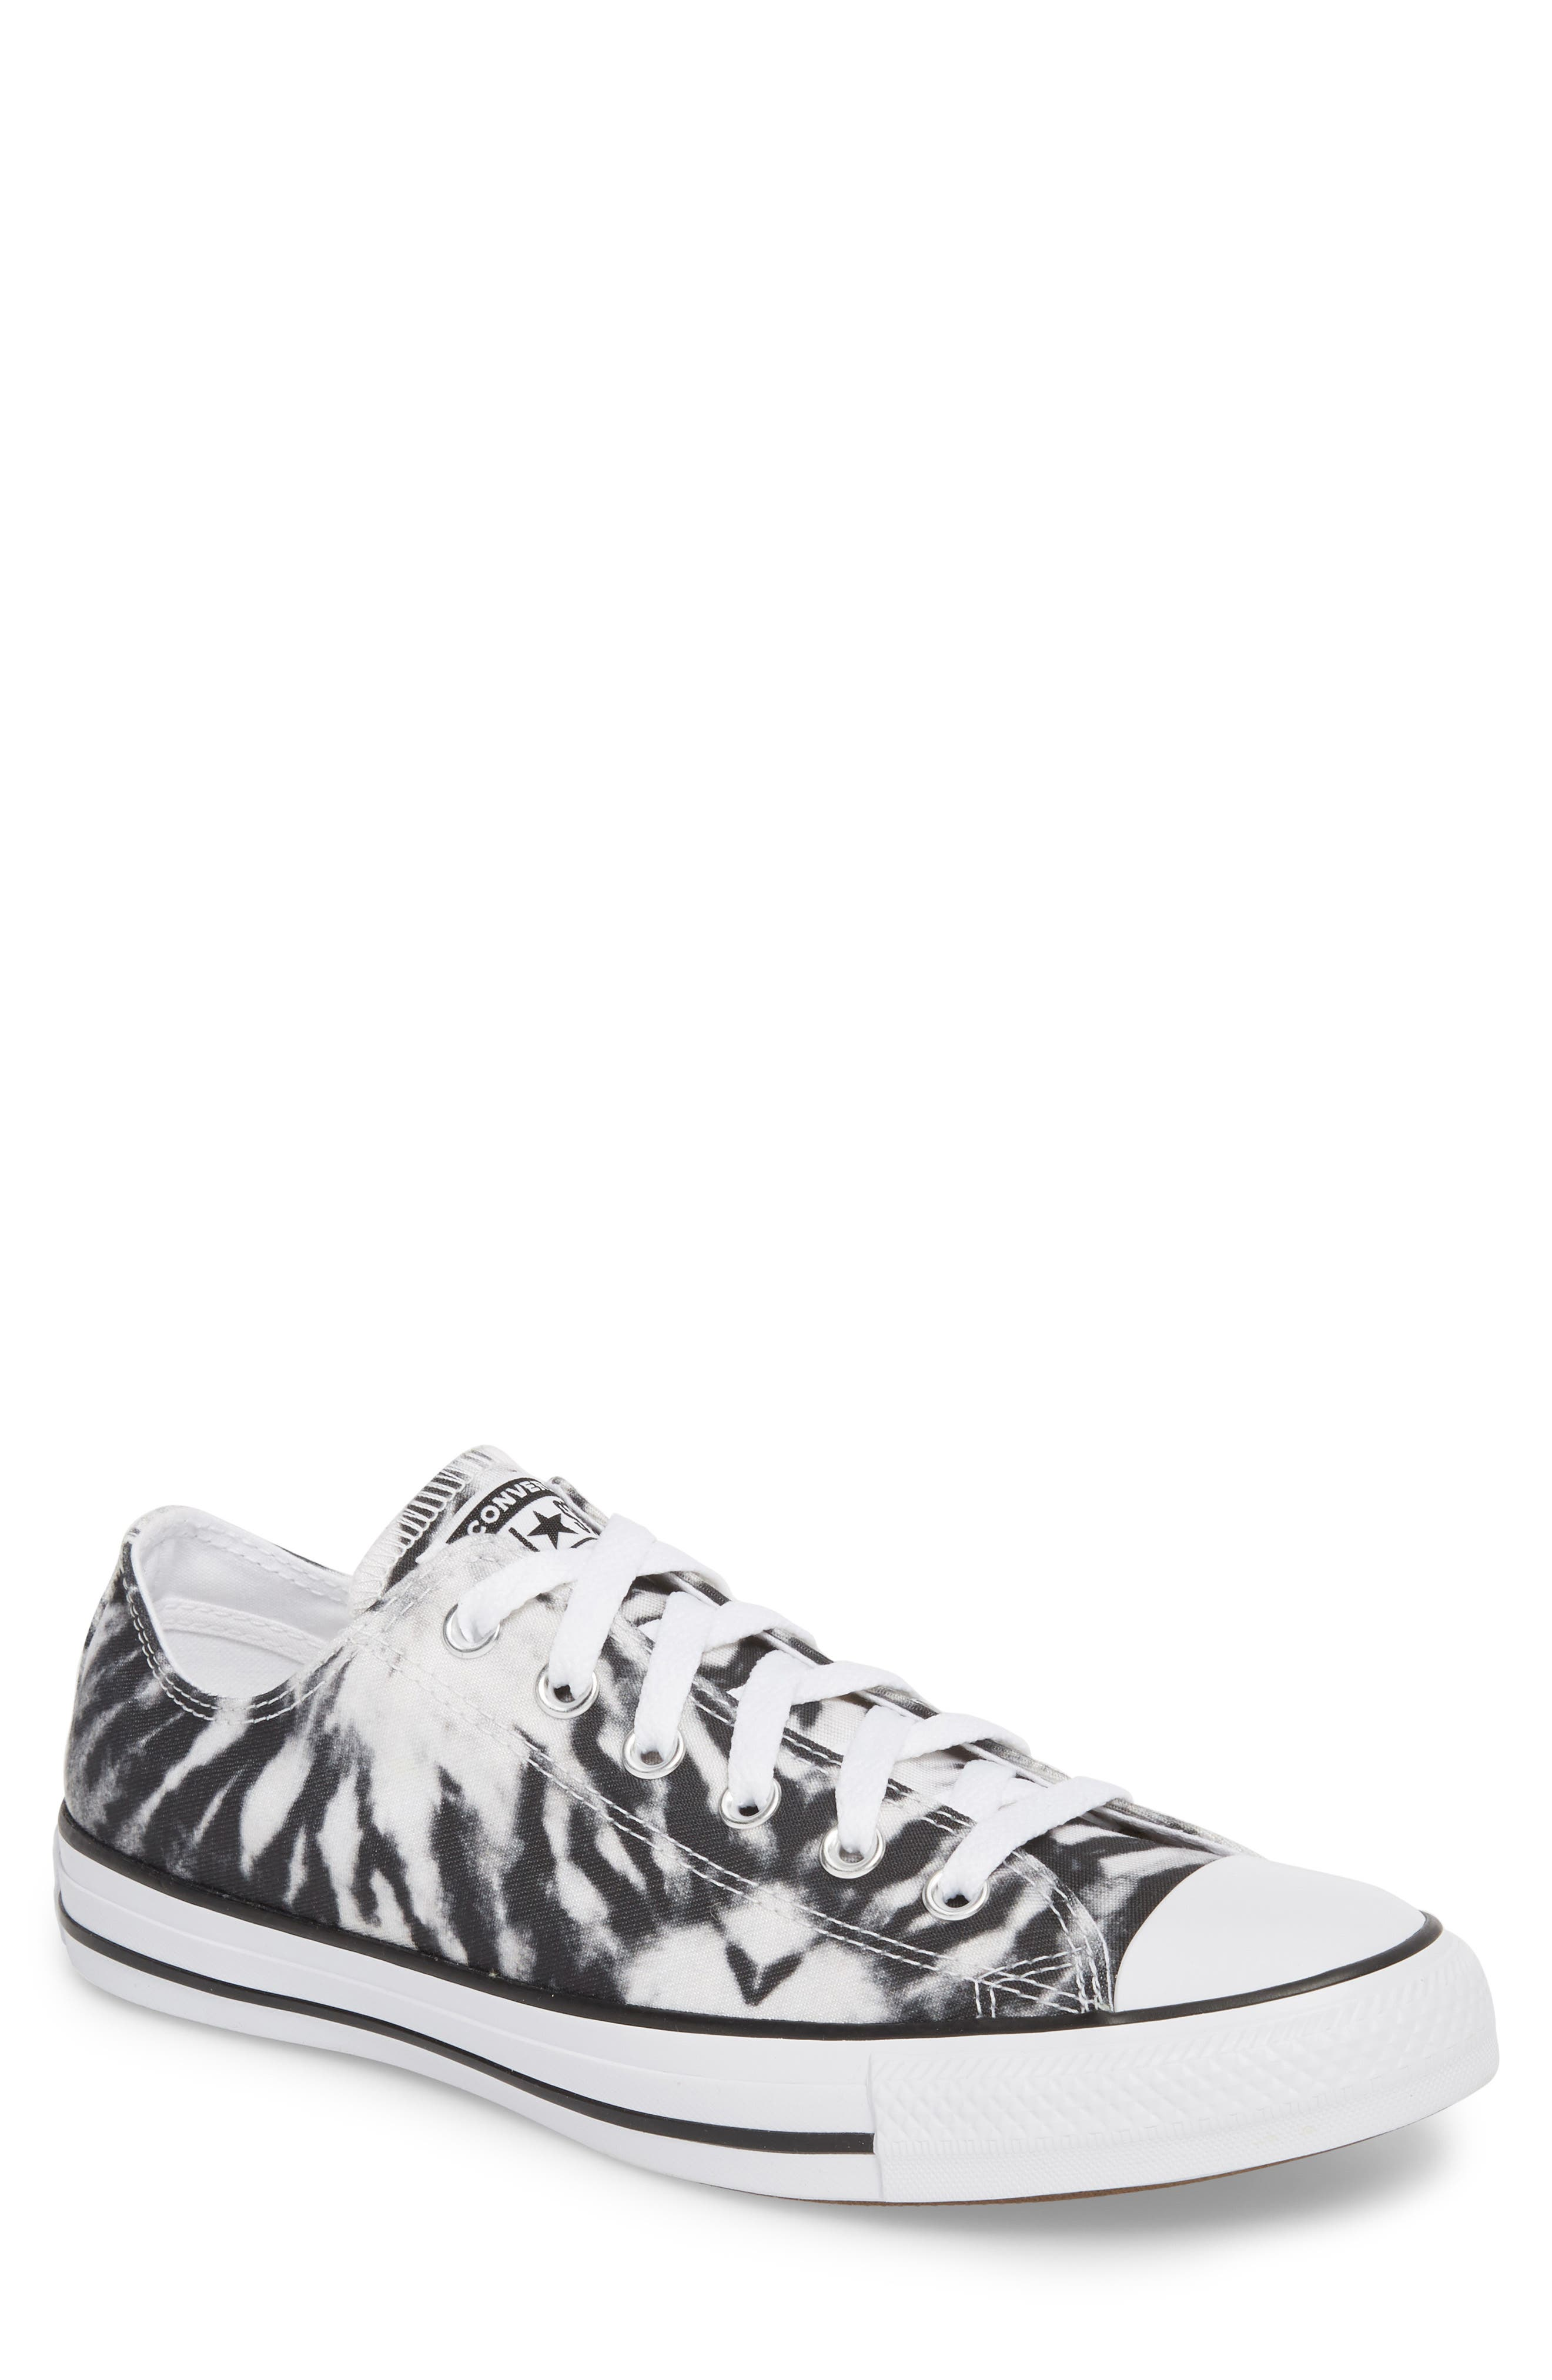 Chuck Taylor<sup>®</sup> All Star<sup>®</sup> Tie Dye Low Top Sneaker,                             Main thumbnail 1, color,                             001